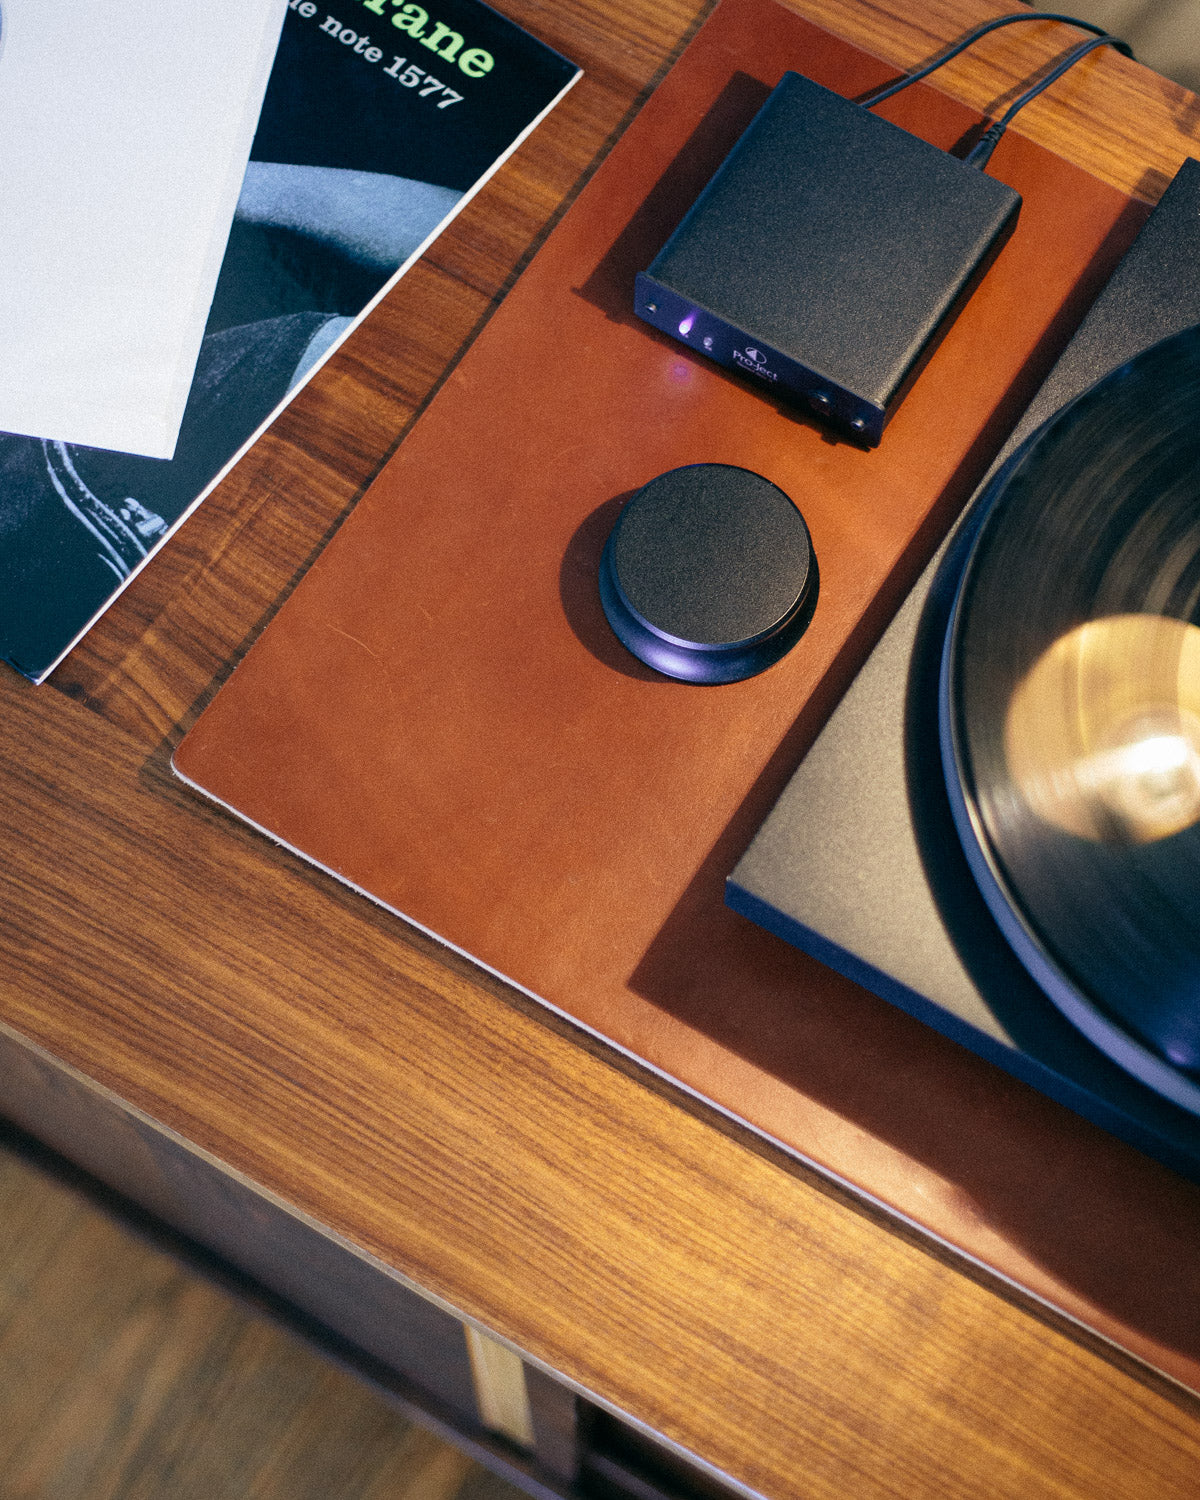 Leather desk mat, used under a turntable for vibration damping